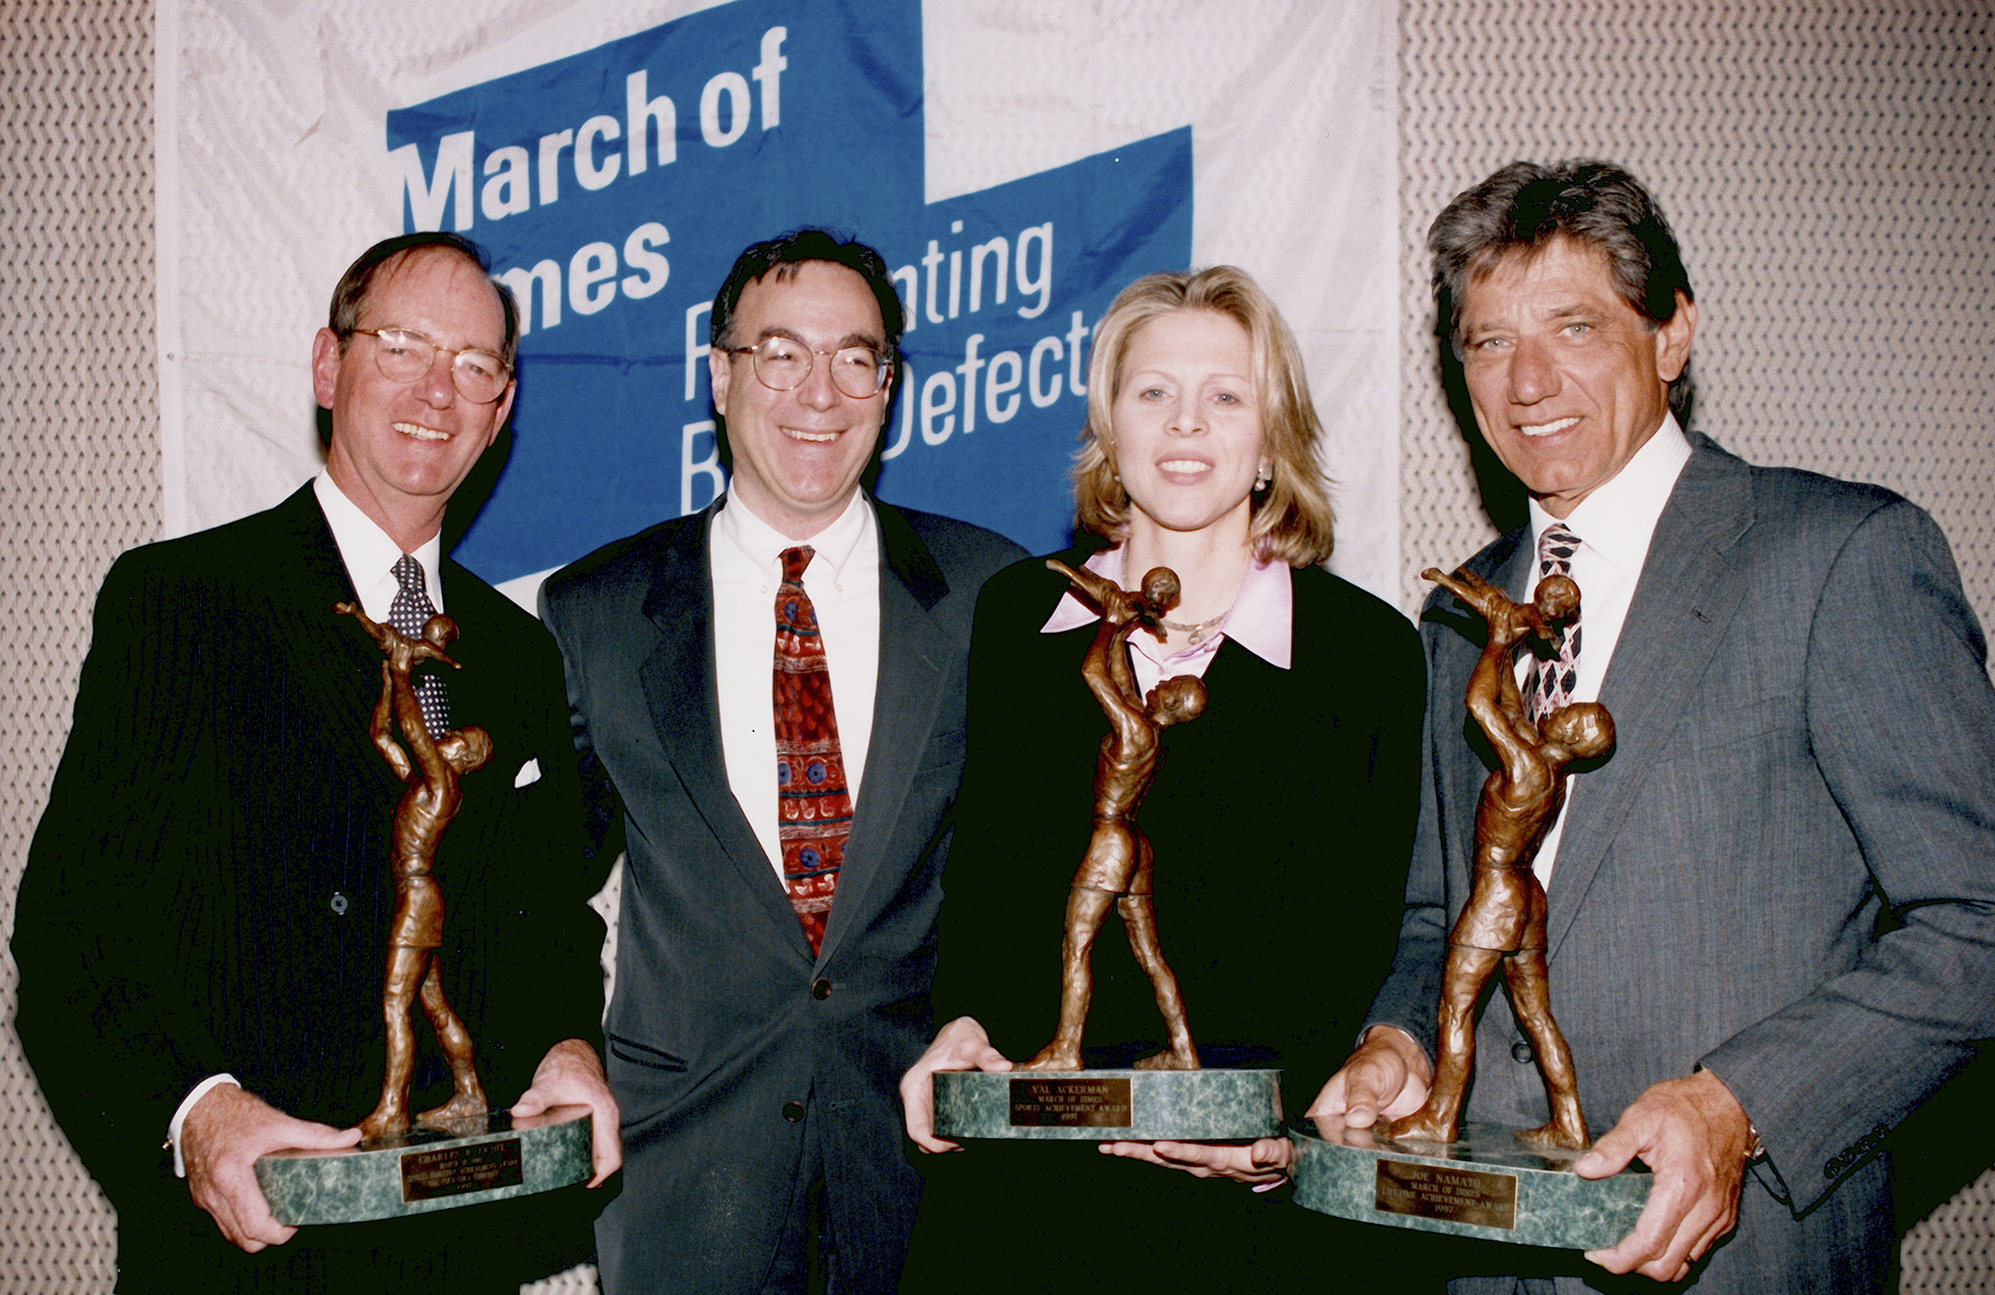 New York Jets Superbowl-Winning Quarterback Joe Namath, WNBA Commissioner Val Ackerman, Sculptor Marc Mellon, and Sports Marketing Leader Chuck Fruit